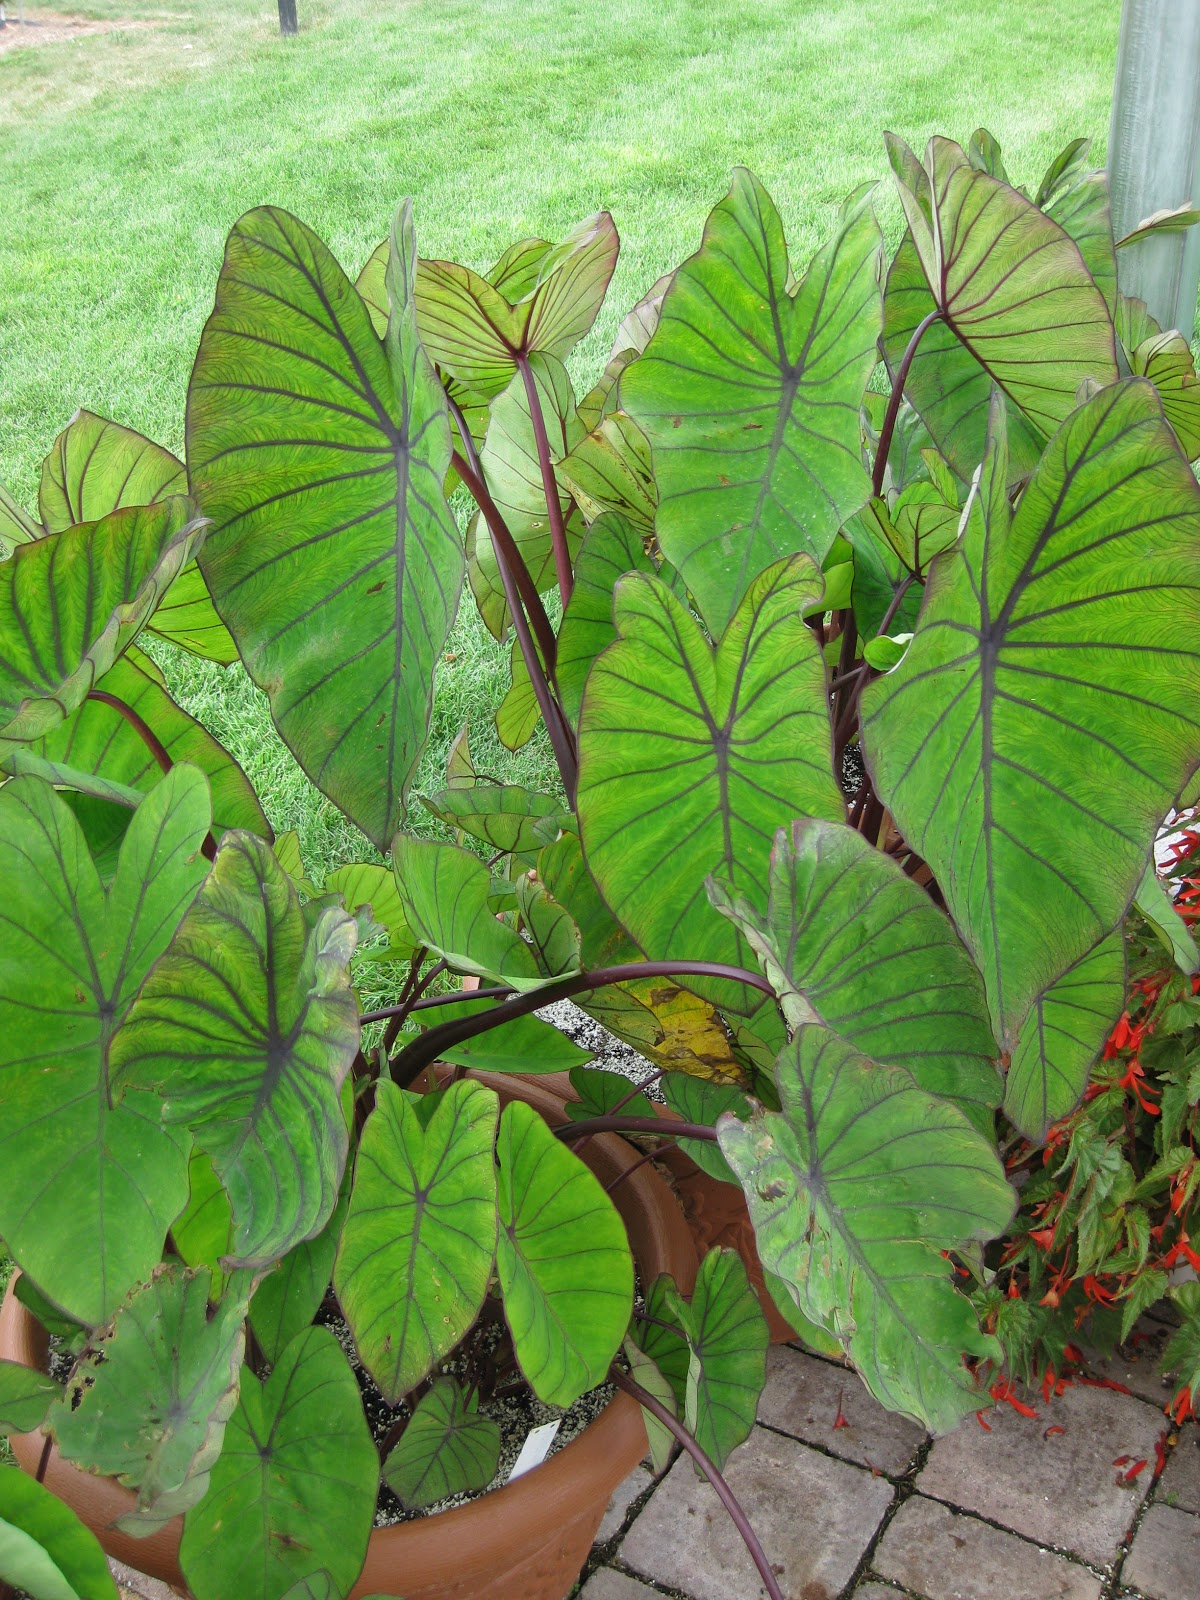 colocasia esculenta 5 live colocasia esculenta elephant ear taro gabi kalo eddo bulbs ready to grow 40 out of 5 stars - 5 live colocasia esculenta elephant ear taro gabi kalo eddo bulbs ready to grow 10 product ratings [object object].